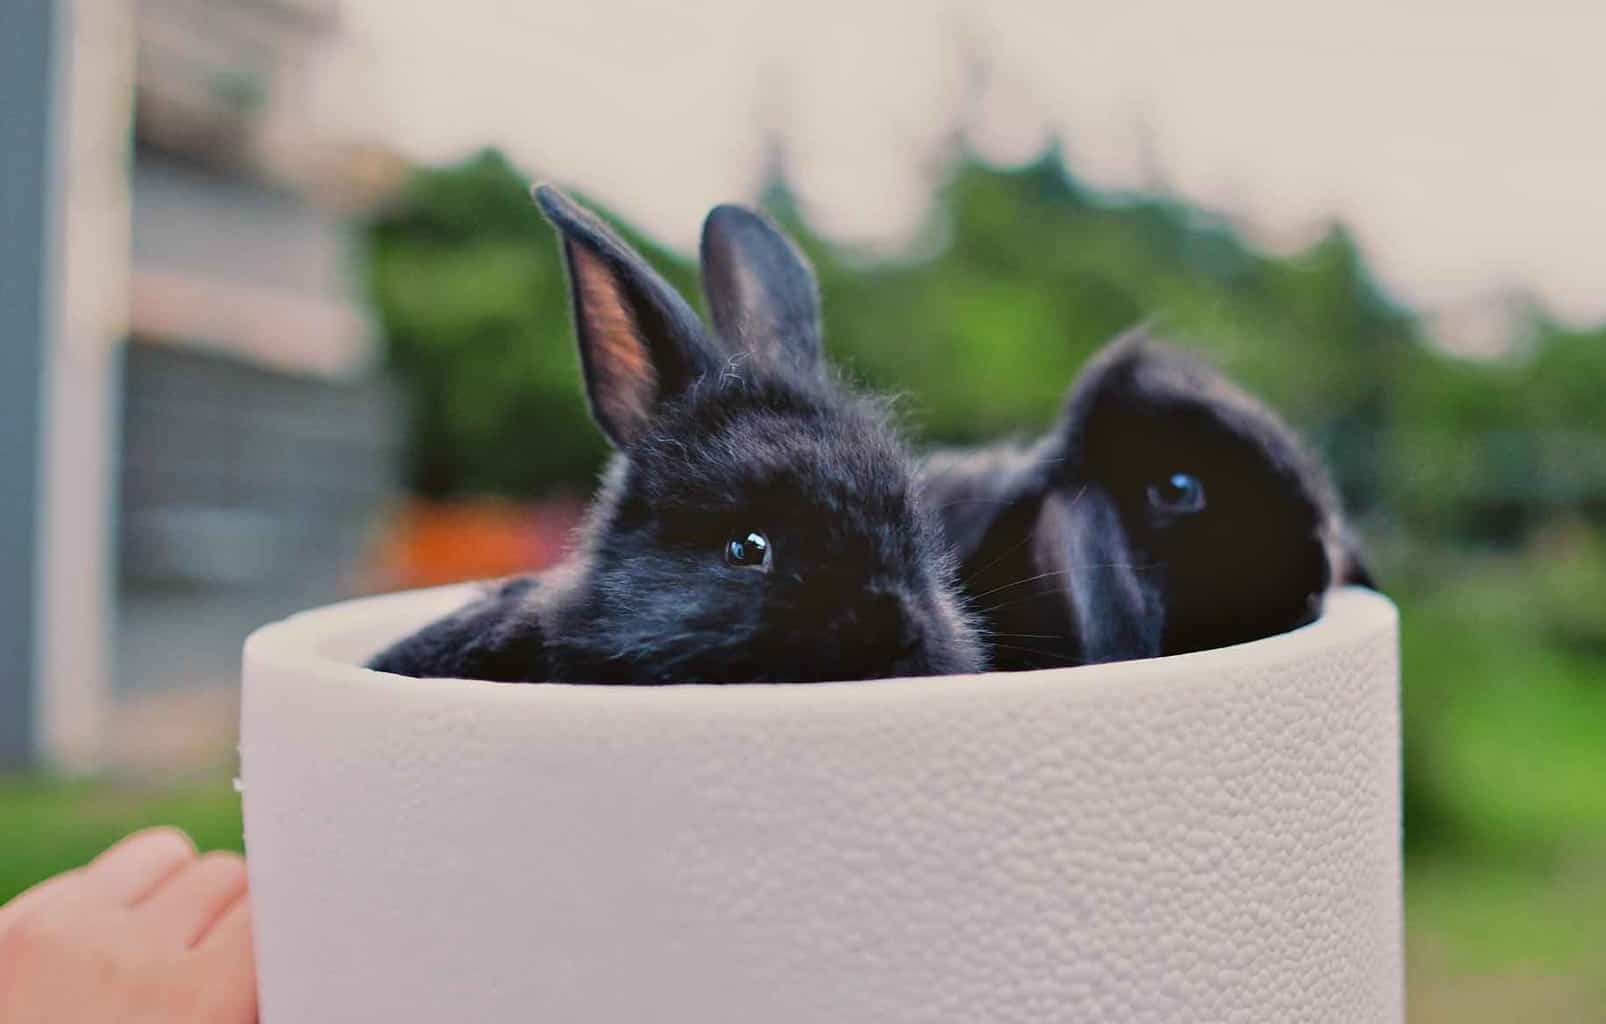 Crazy swiss facts - rabbits and pets